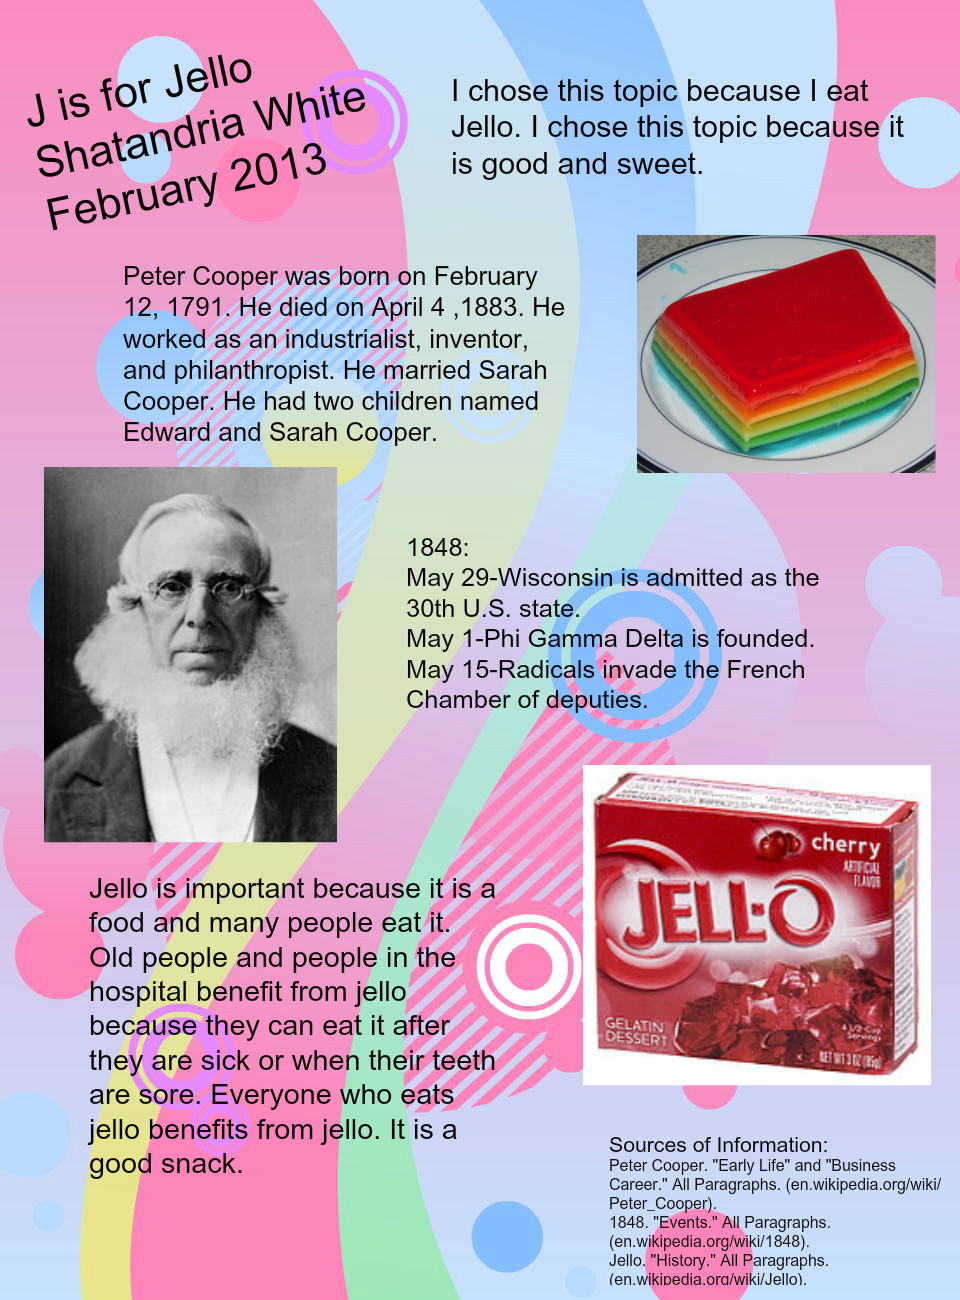 J IS FOR JELLO